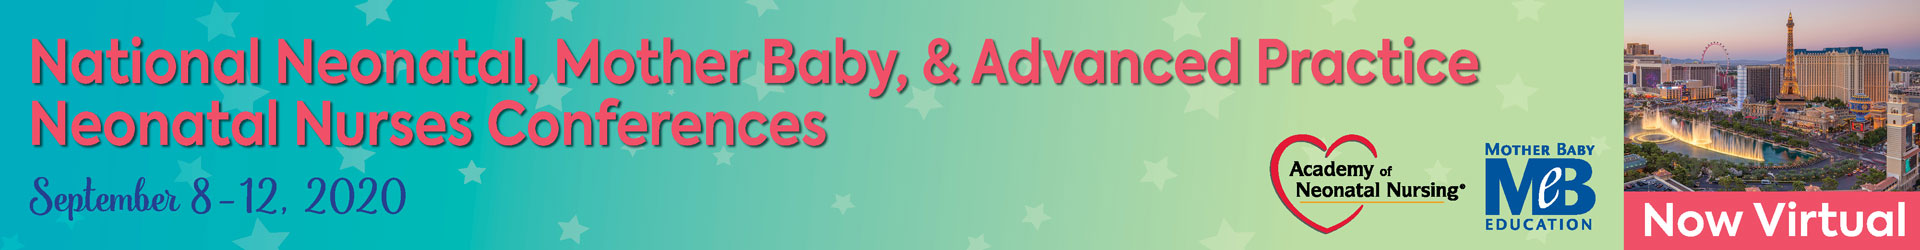 2020 National Neonatal/Advanced Practice/Mother Baby Nurses Conference Event Banner